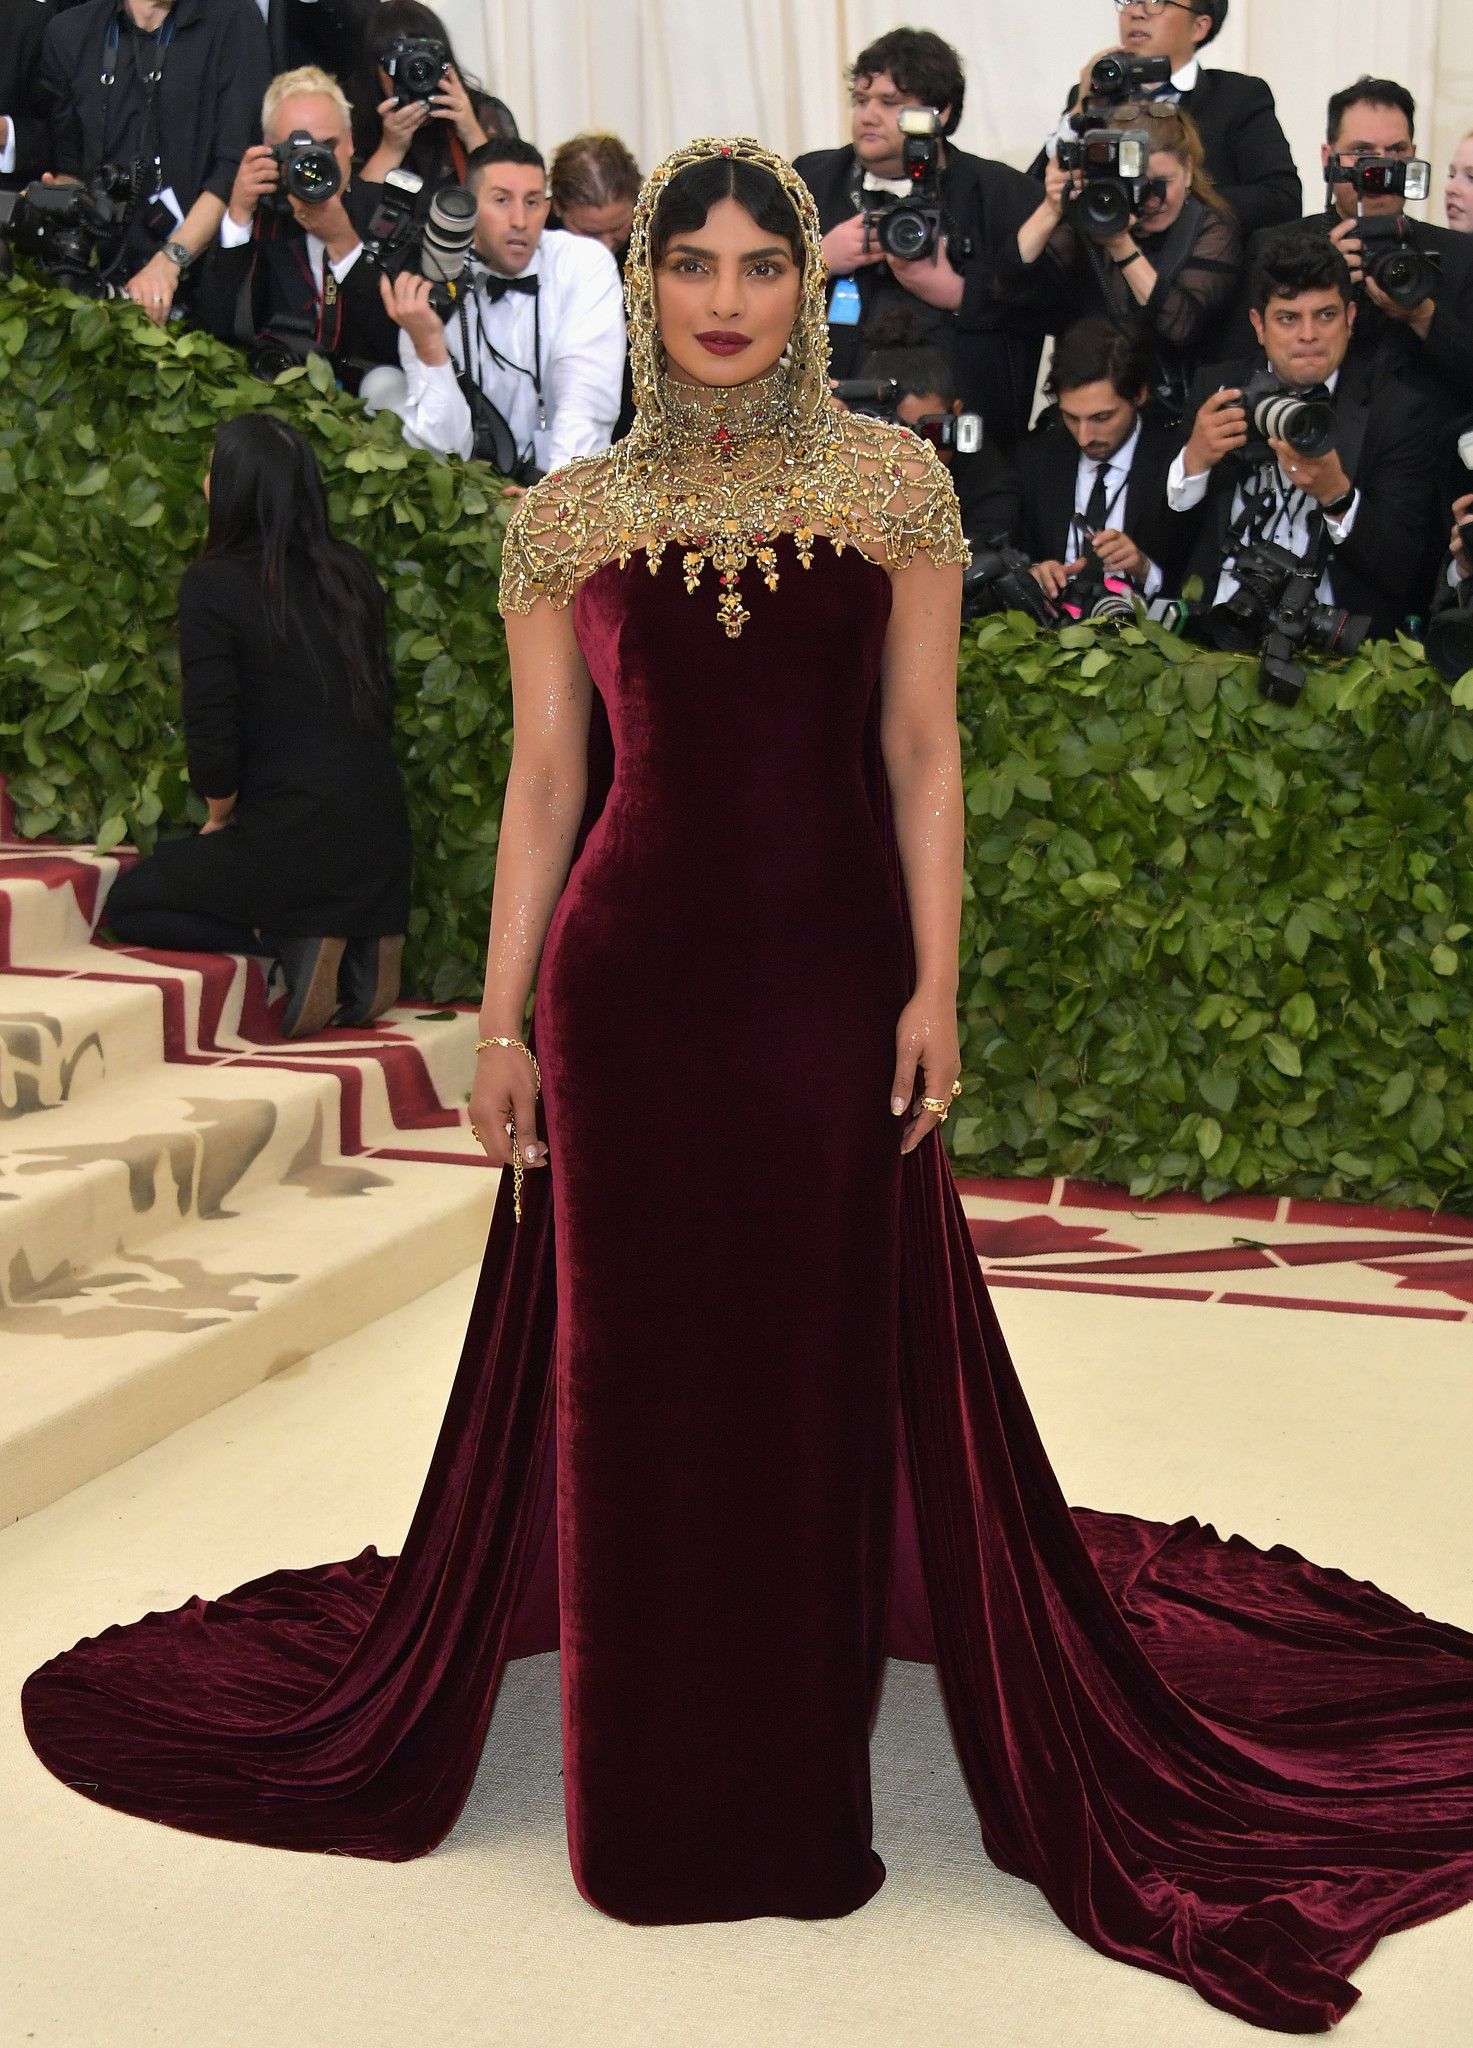 For the 2018 Met Gala, Priyanka Chopra has her styled in a clear reference to images of the Virgin Mary.